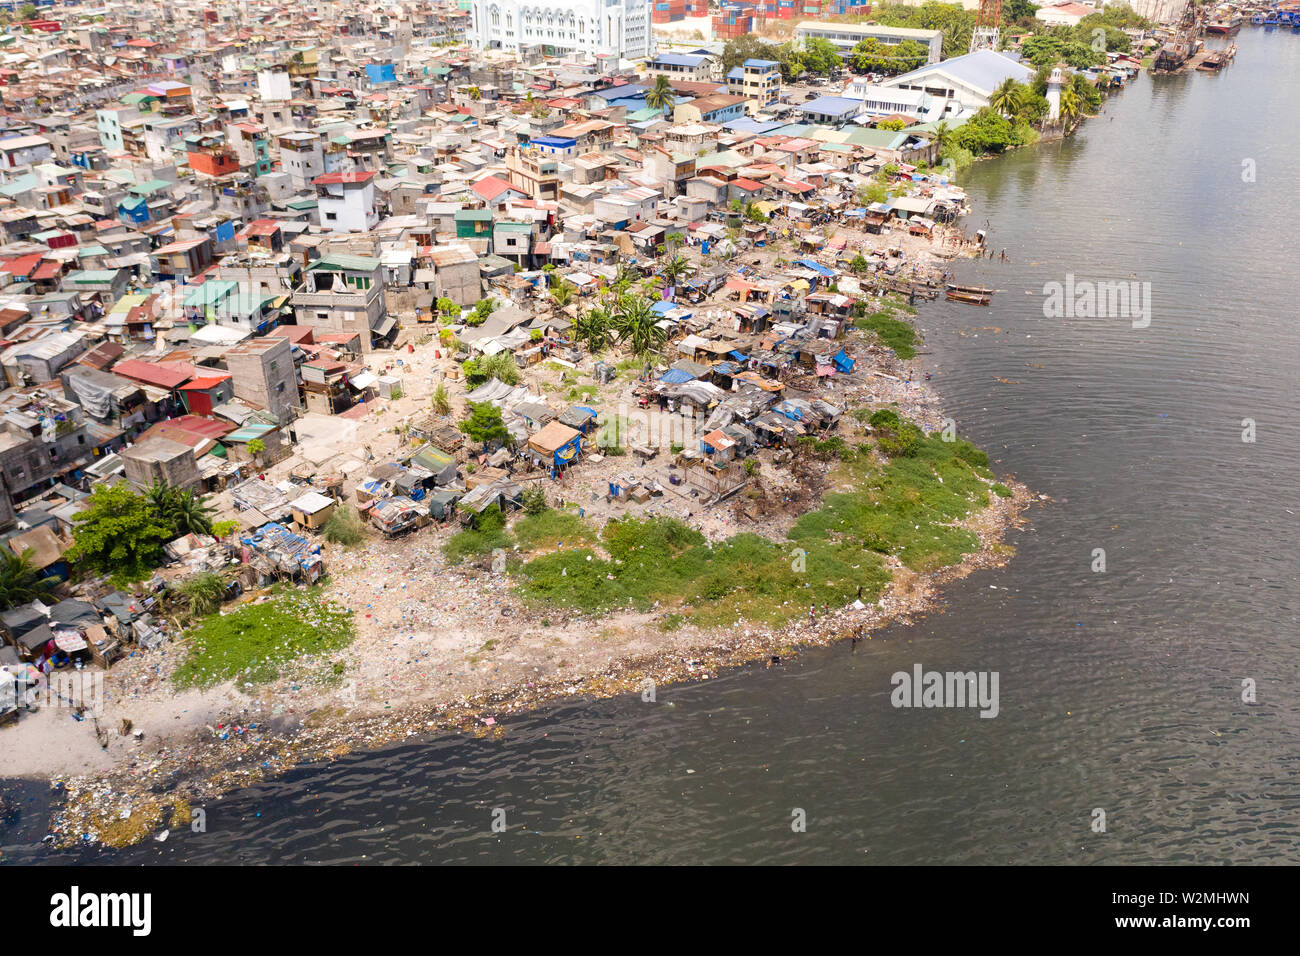 Slums in Manila, a top view. Sea pollution by household waste. Plastic trash on the beach. Stock Photo